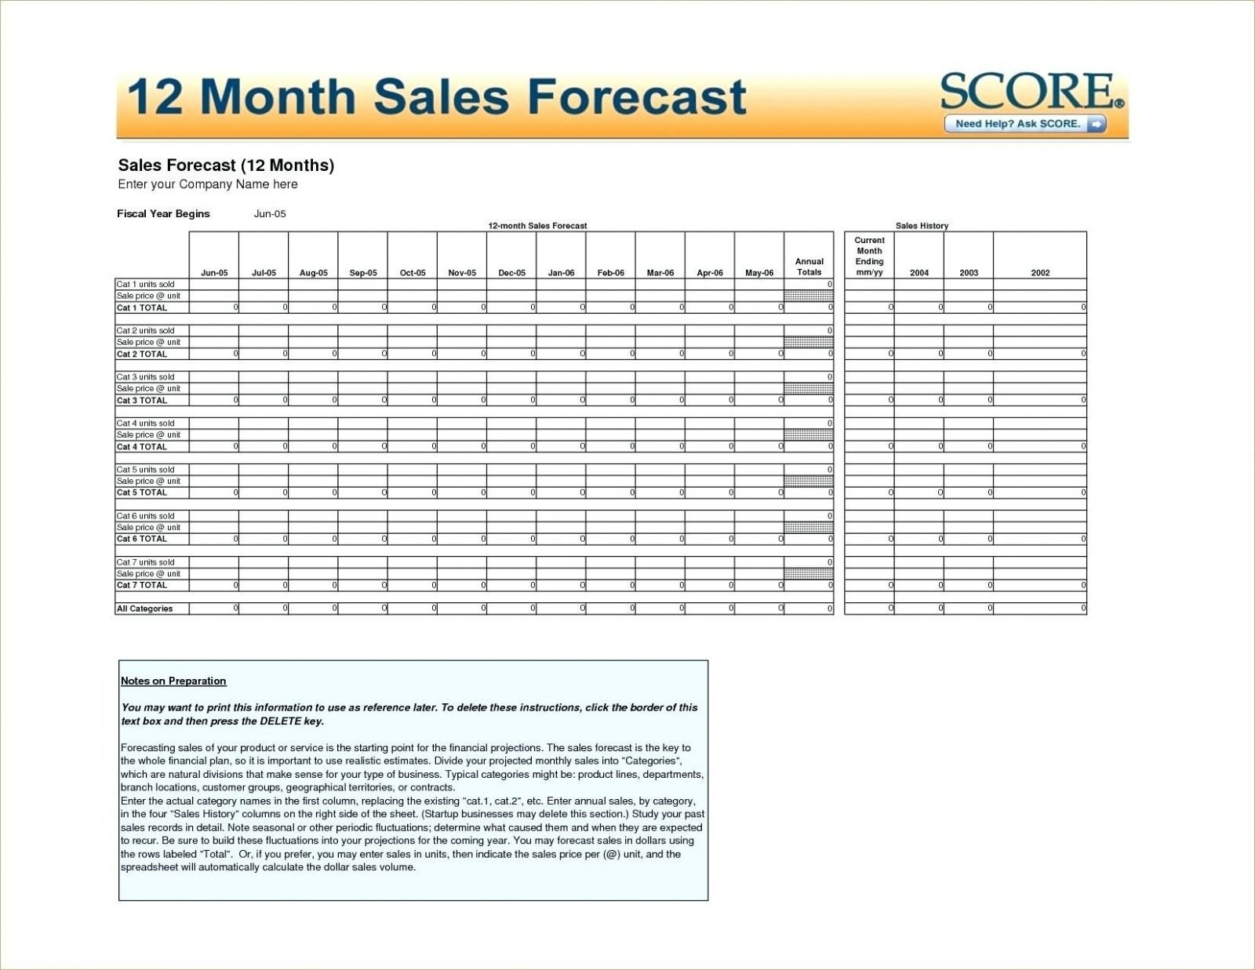 Sales Forecast Template For Startup Business Simple Business Plan In Sales Forecast Template For Startup Business